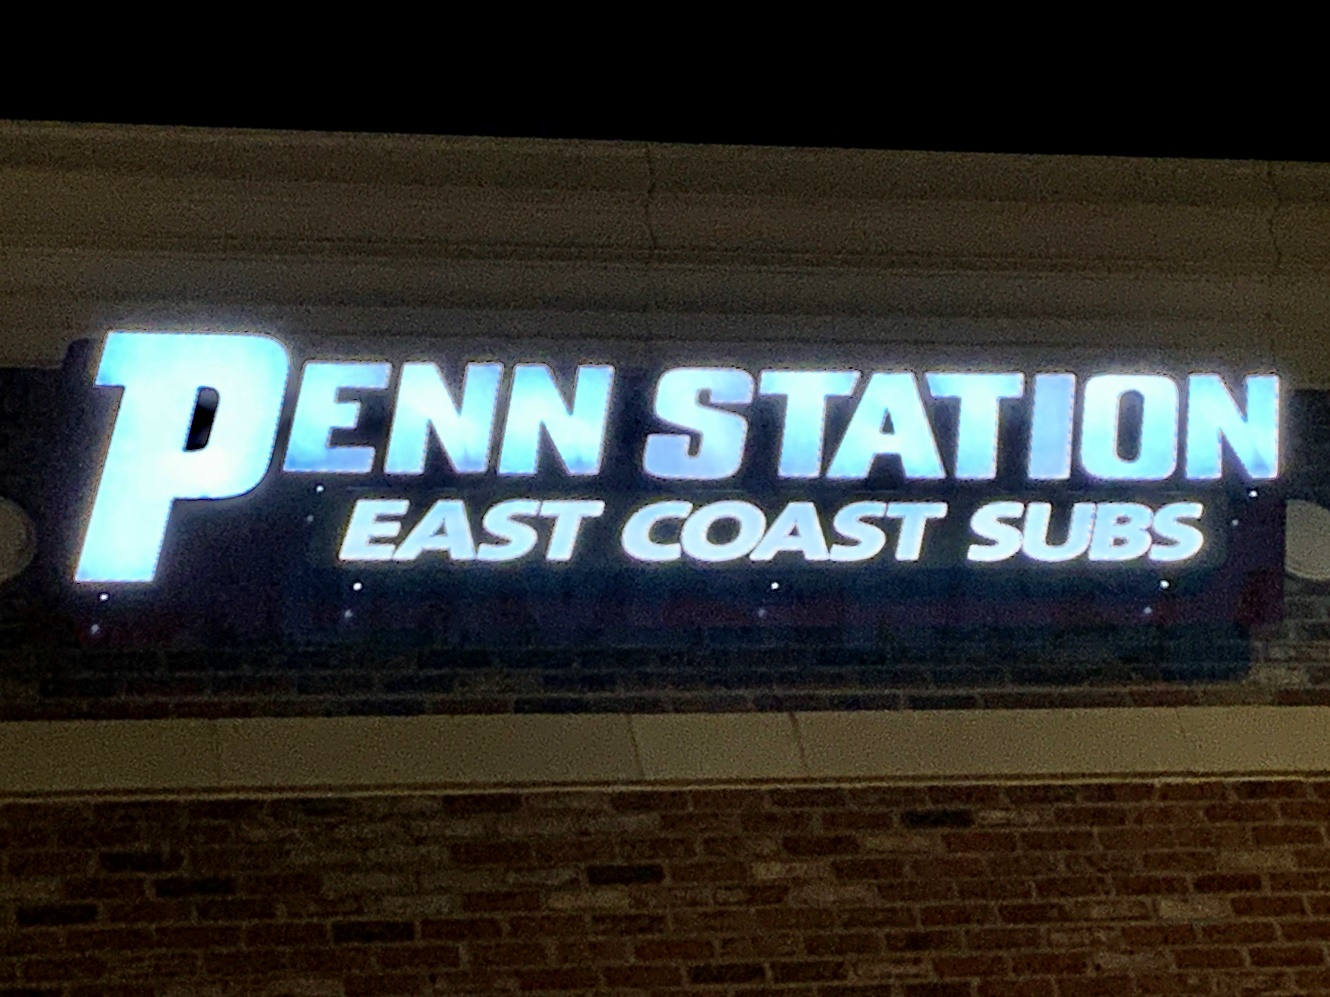 Penn Station outdoor lighted signs in Charlotte, NC